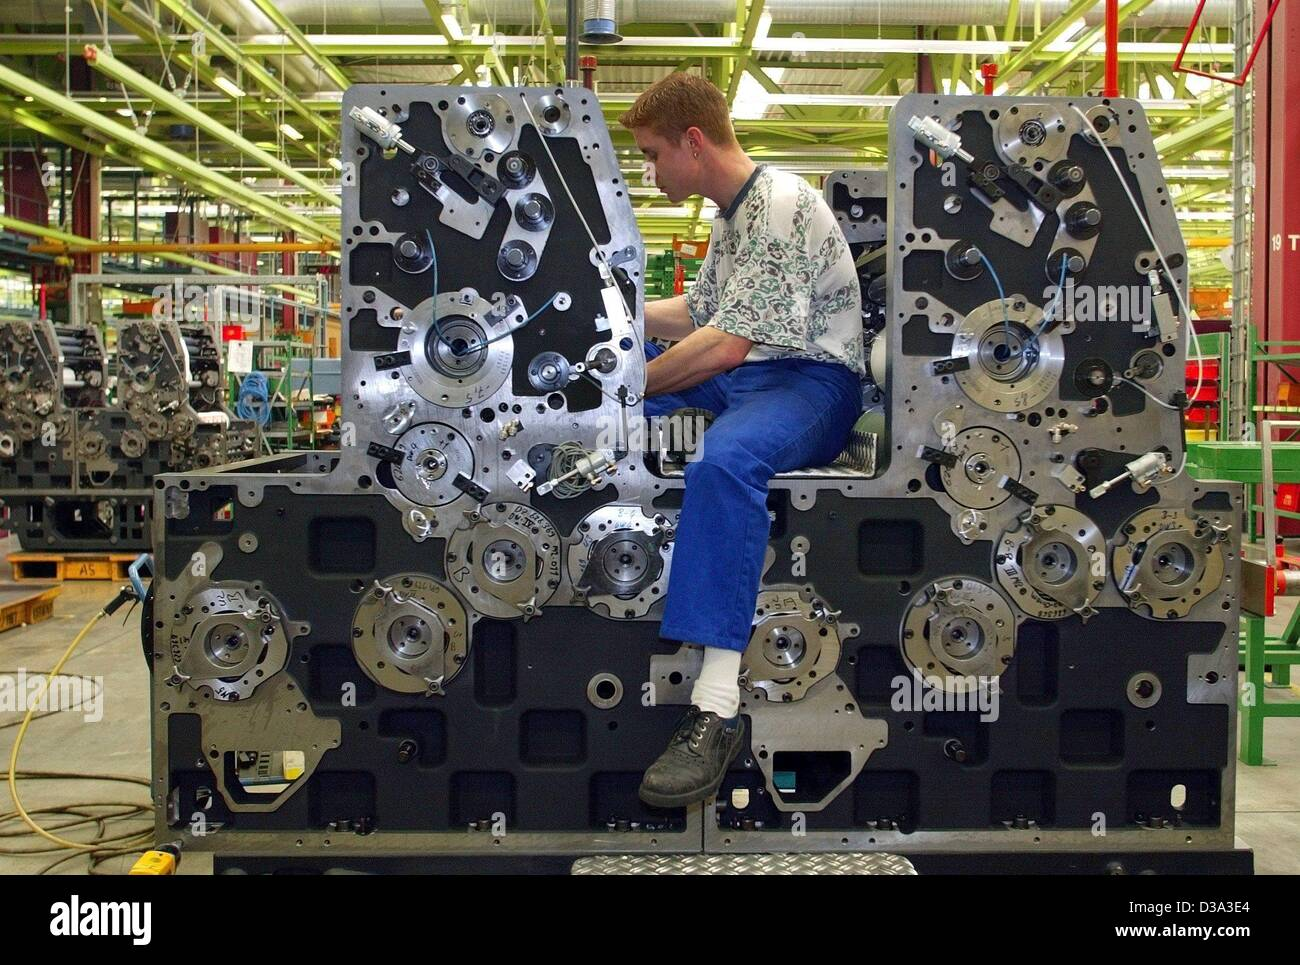 (dpa) - A worker at printing machine manufacturer 'Heidelberger Druckmaschinen' works on a offset printing - Stock Image